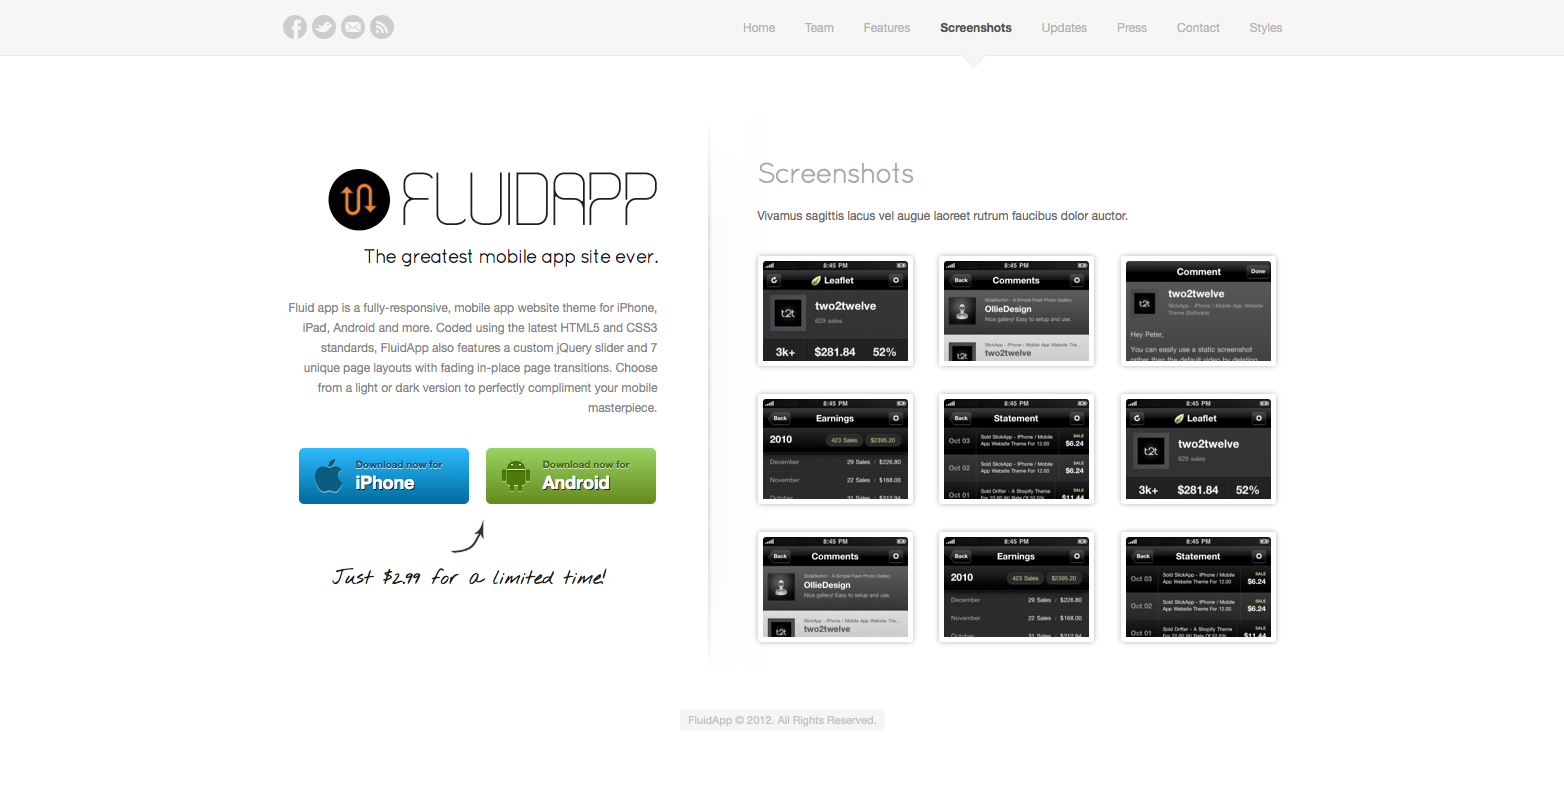 FluidApp - Responsive Mobile App Website Template - Screenshots - display full-sized screenshots of your app using jQuery Fancybox